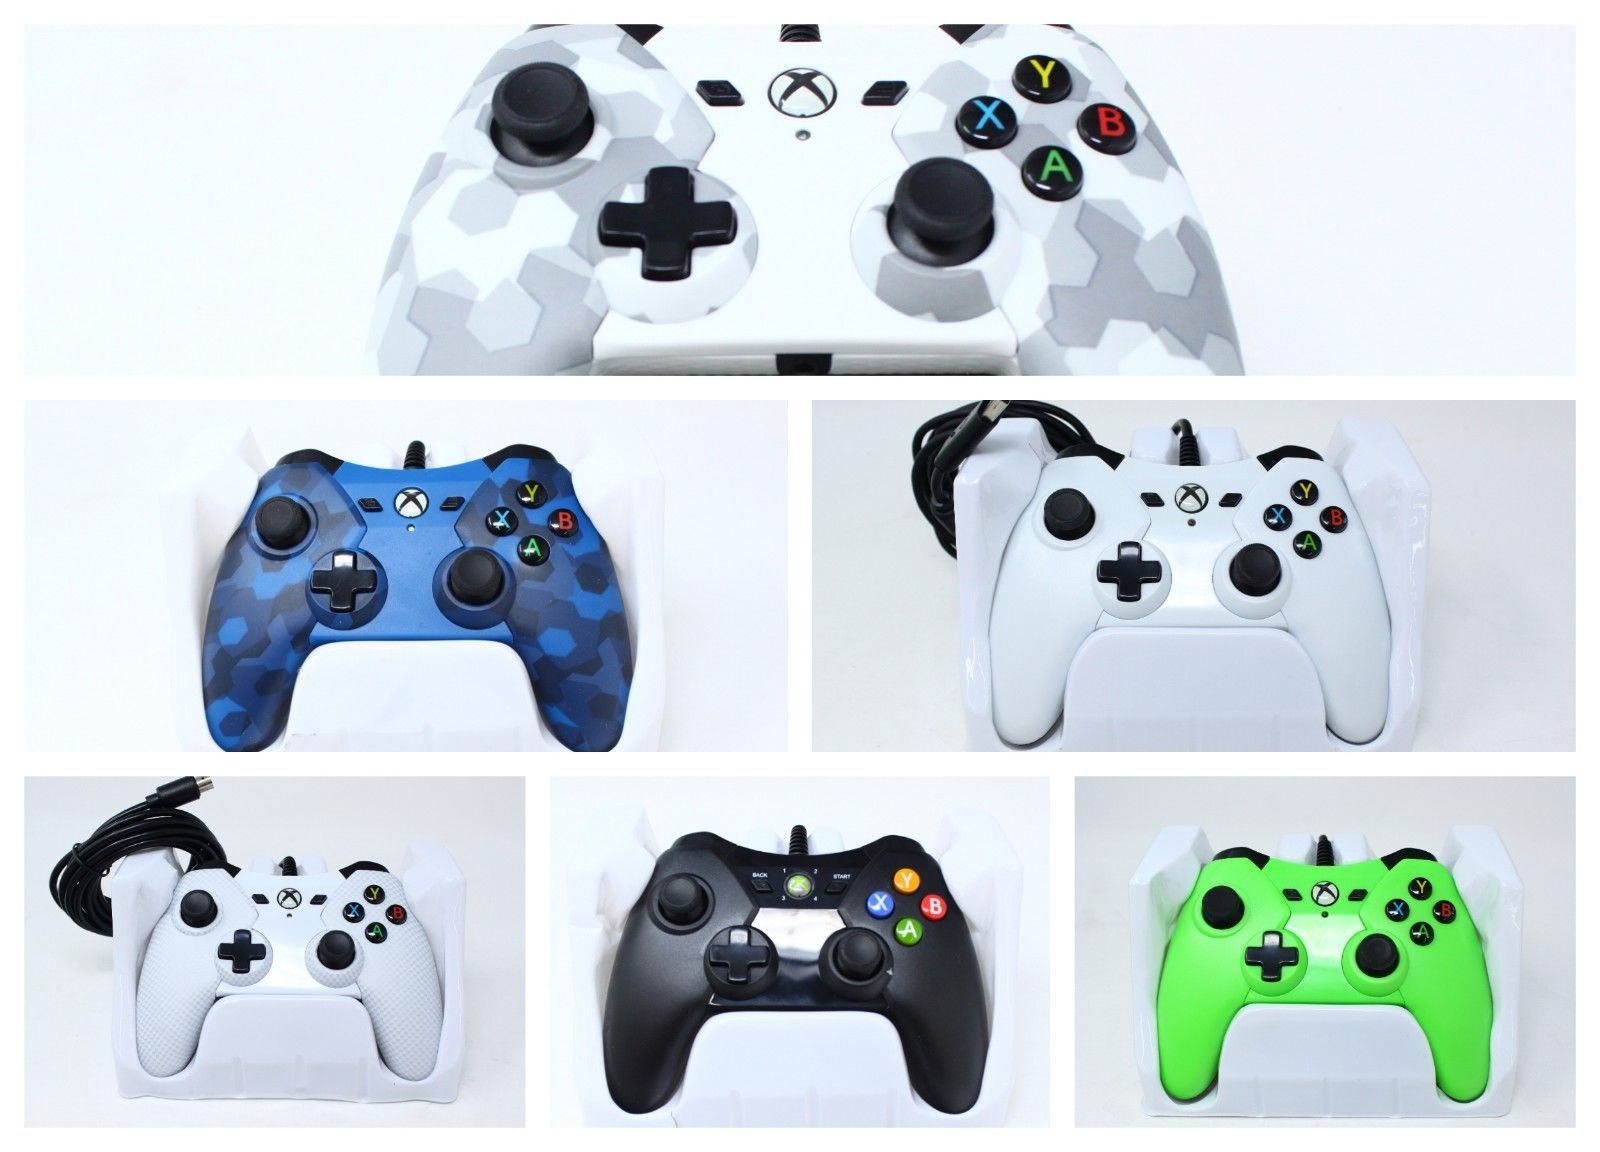 small resolution of power a wired gaming controller for xbox one and windows 10 multi colors buy it now only 17 99 on ebay video accessories power wired gaming